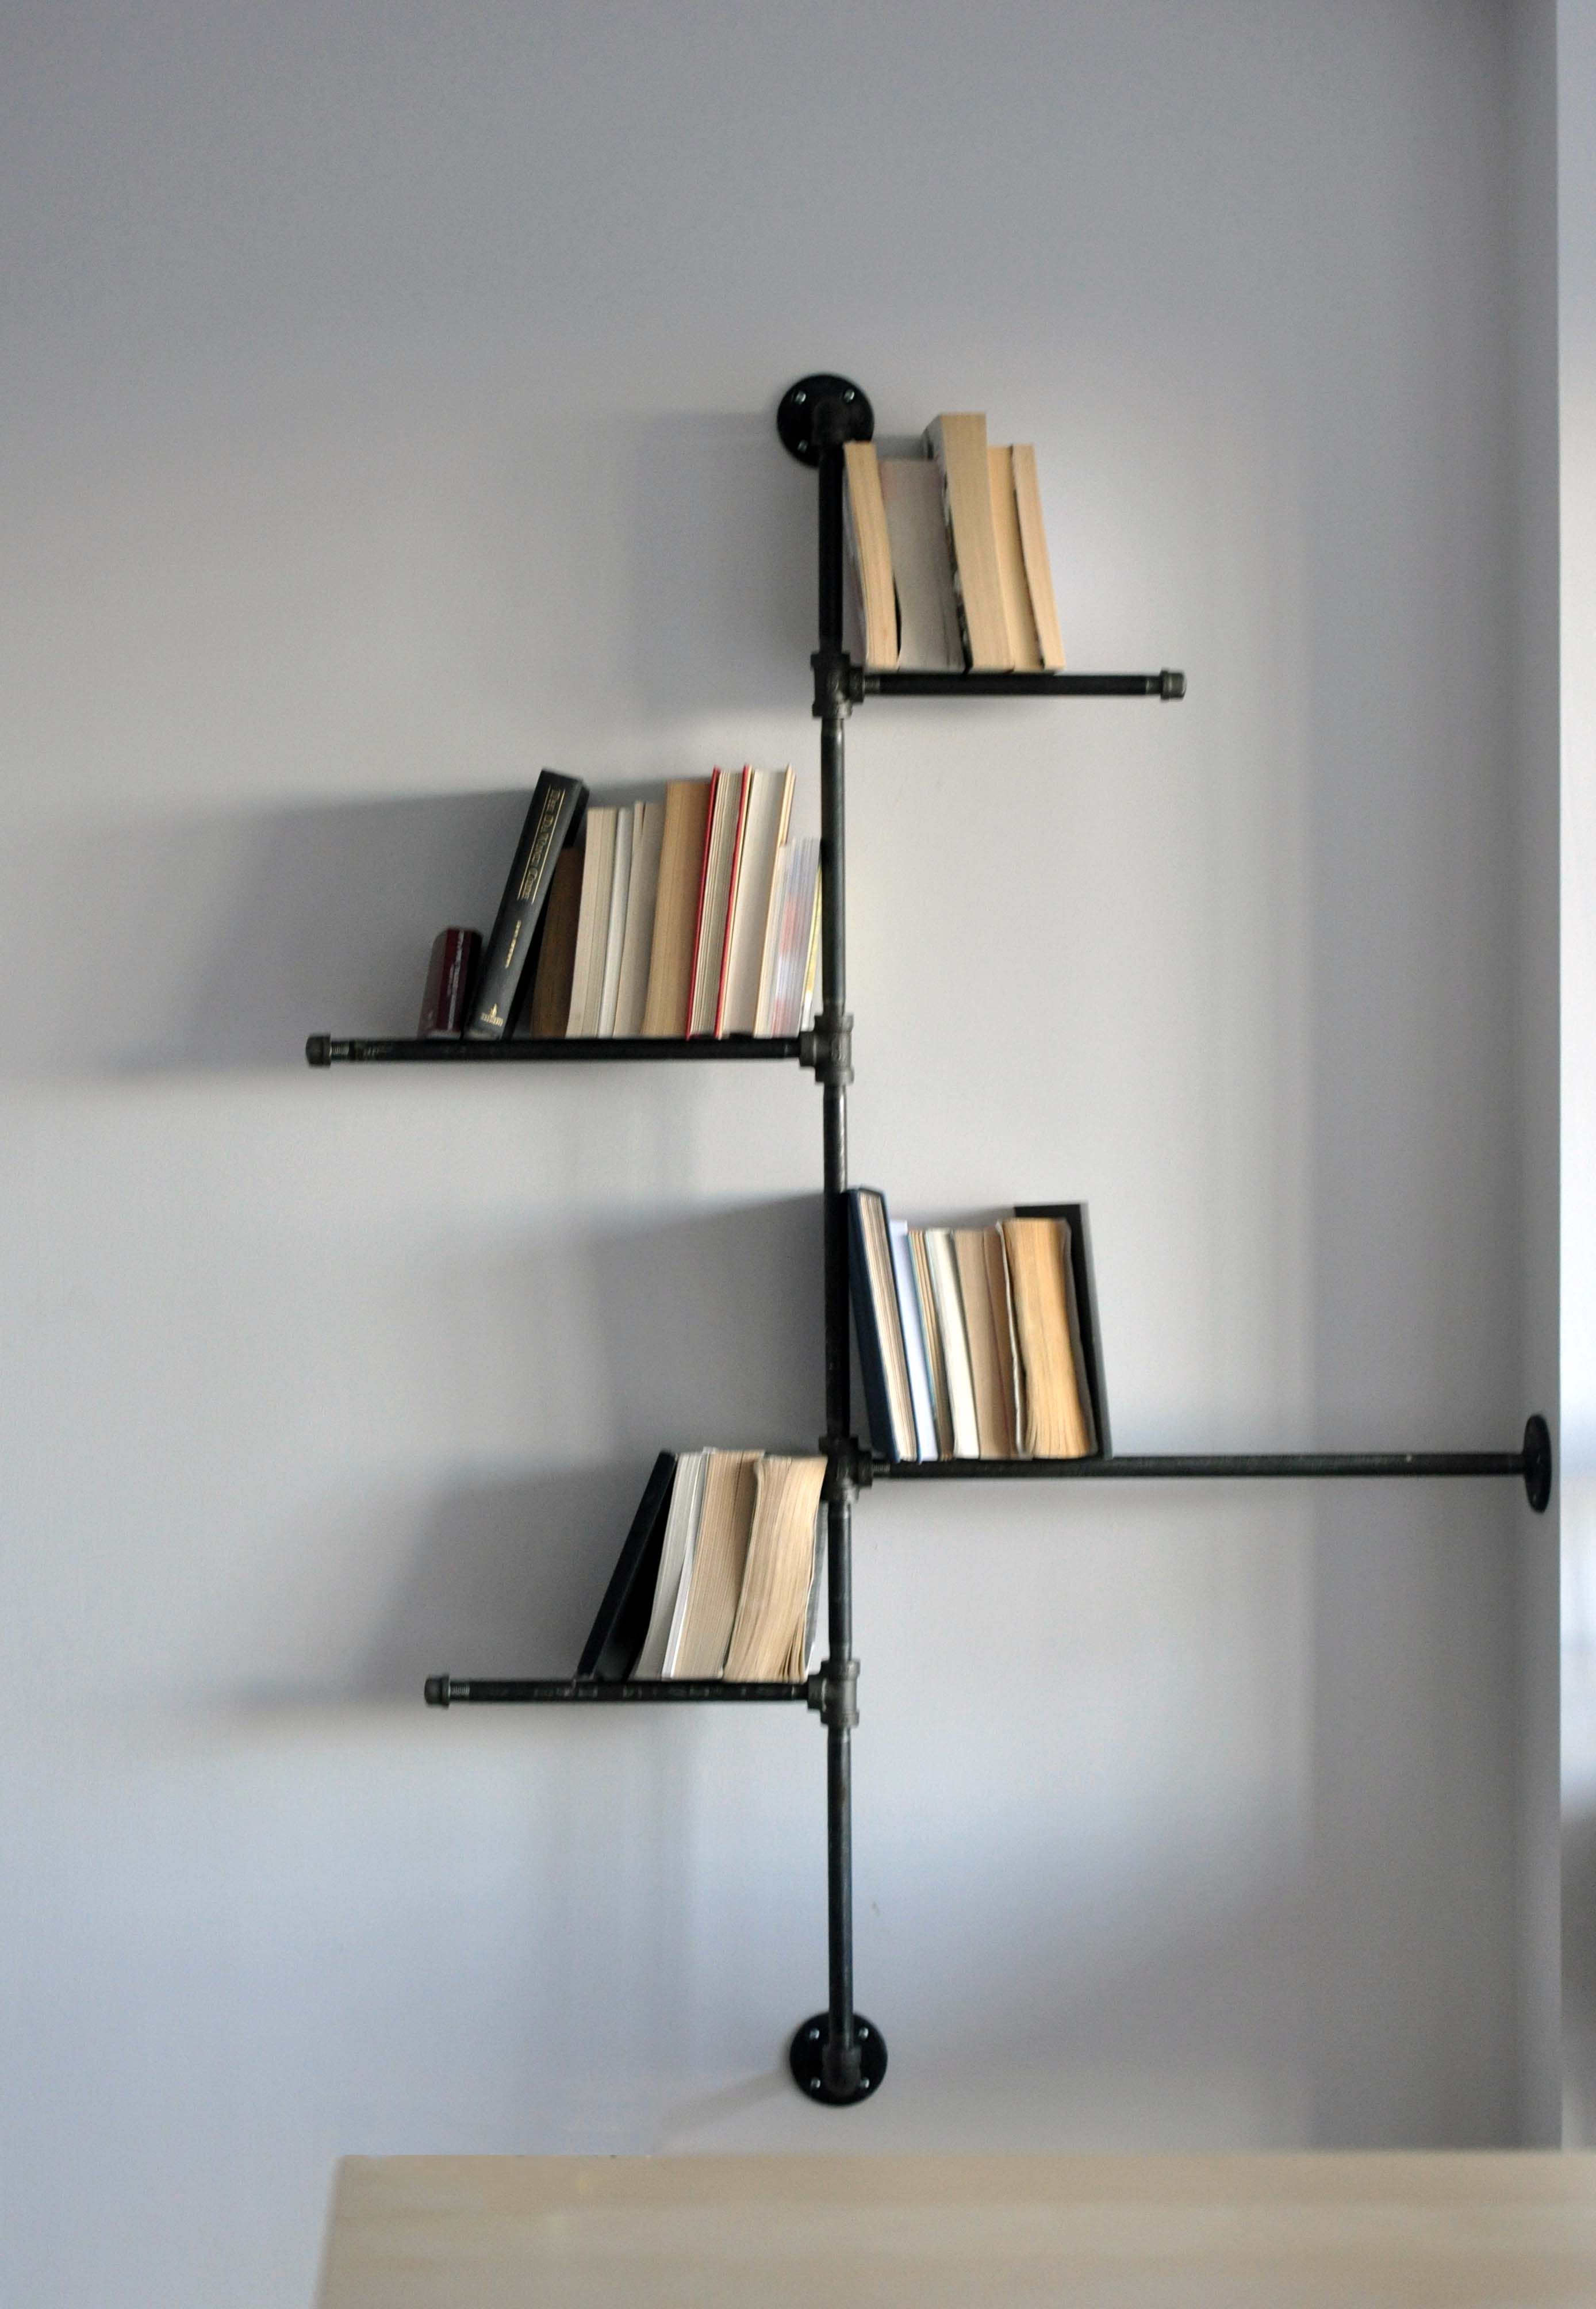 simple attractive lines in this metal bookshelf think the shelves are just metal rods though. Black Bedroom Furniture Sets. Home Design Ideas